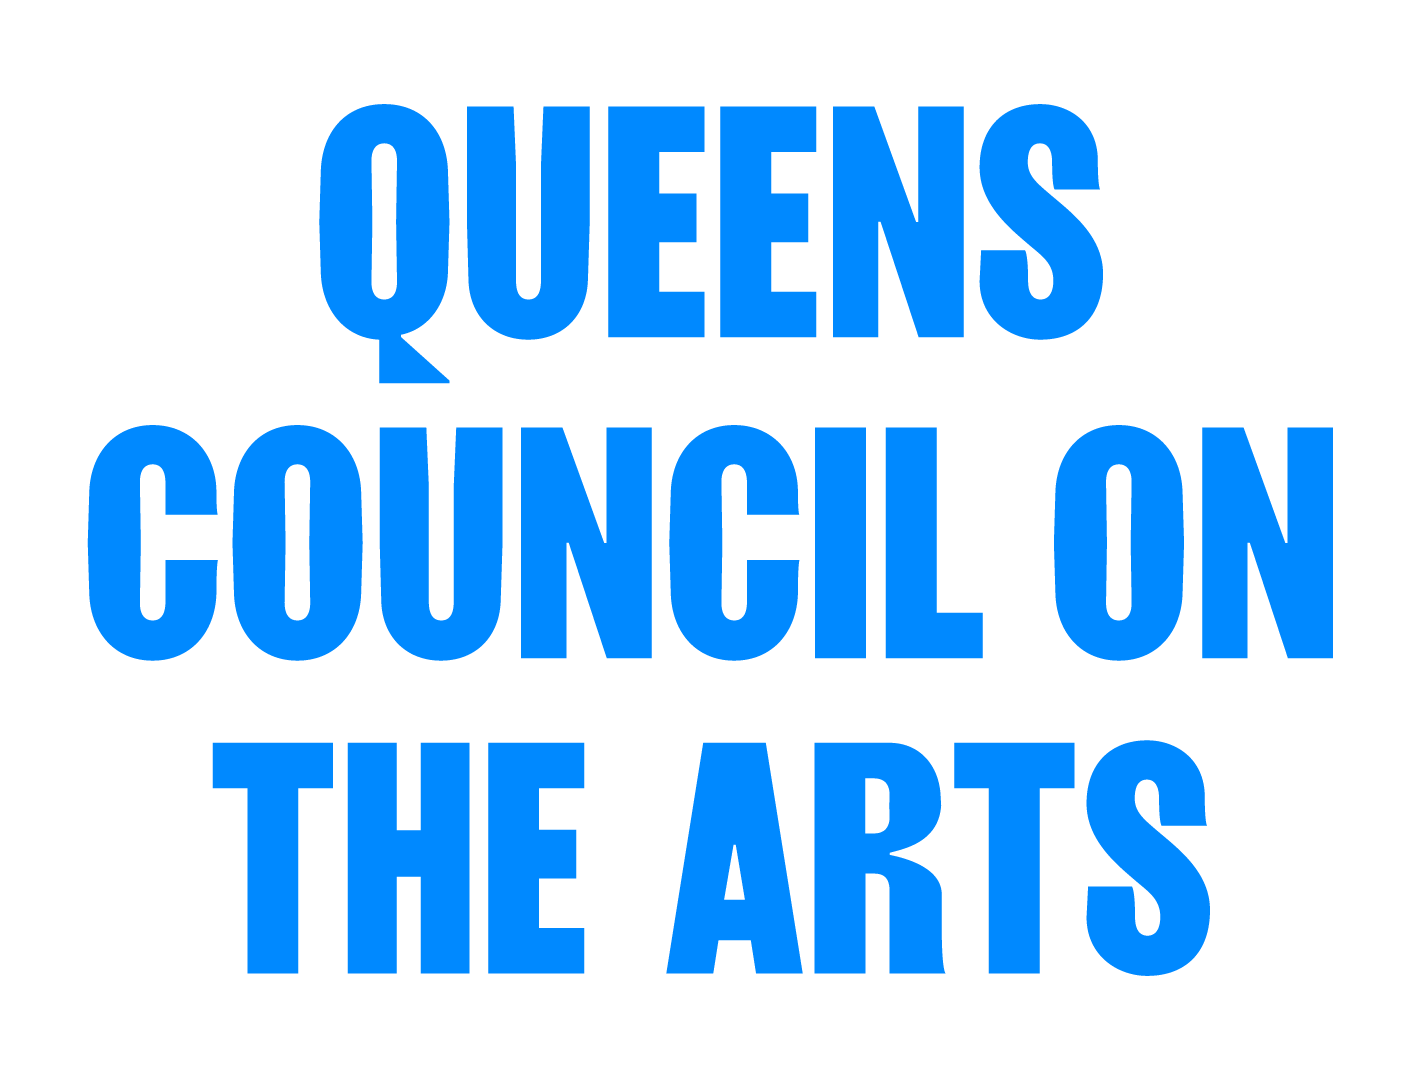 Queens Council on the Arts